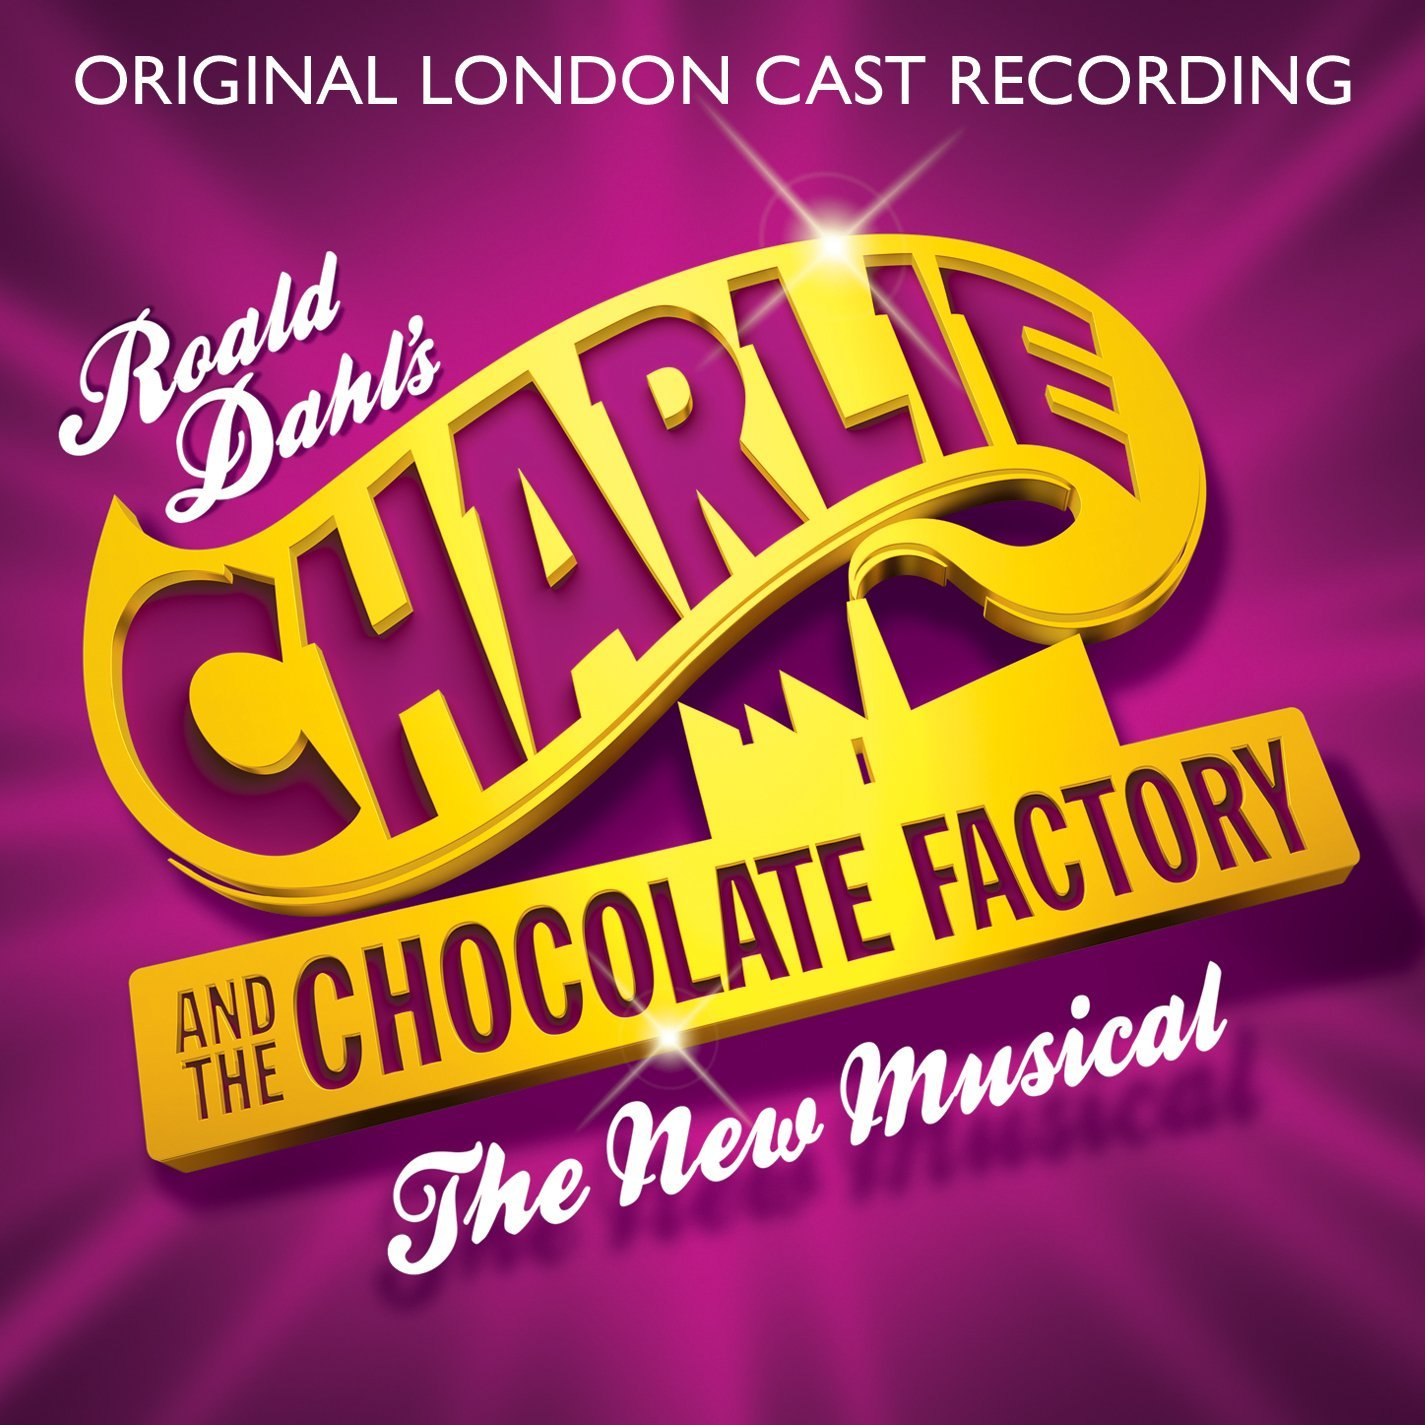 charlie and the chocolate factory roald dahl fans original london cast 2013